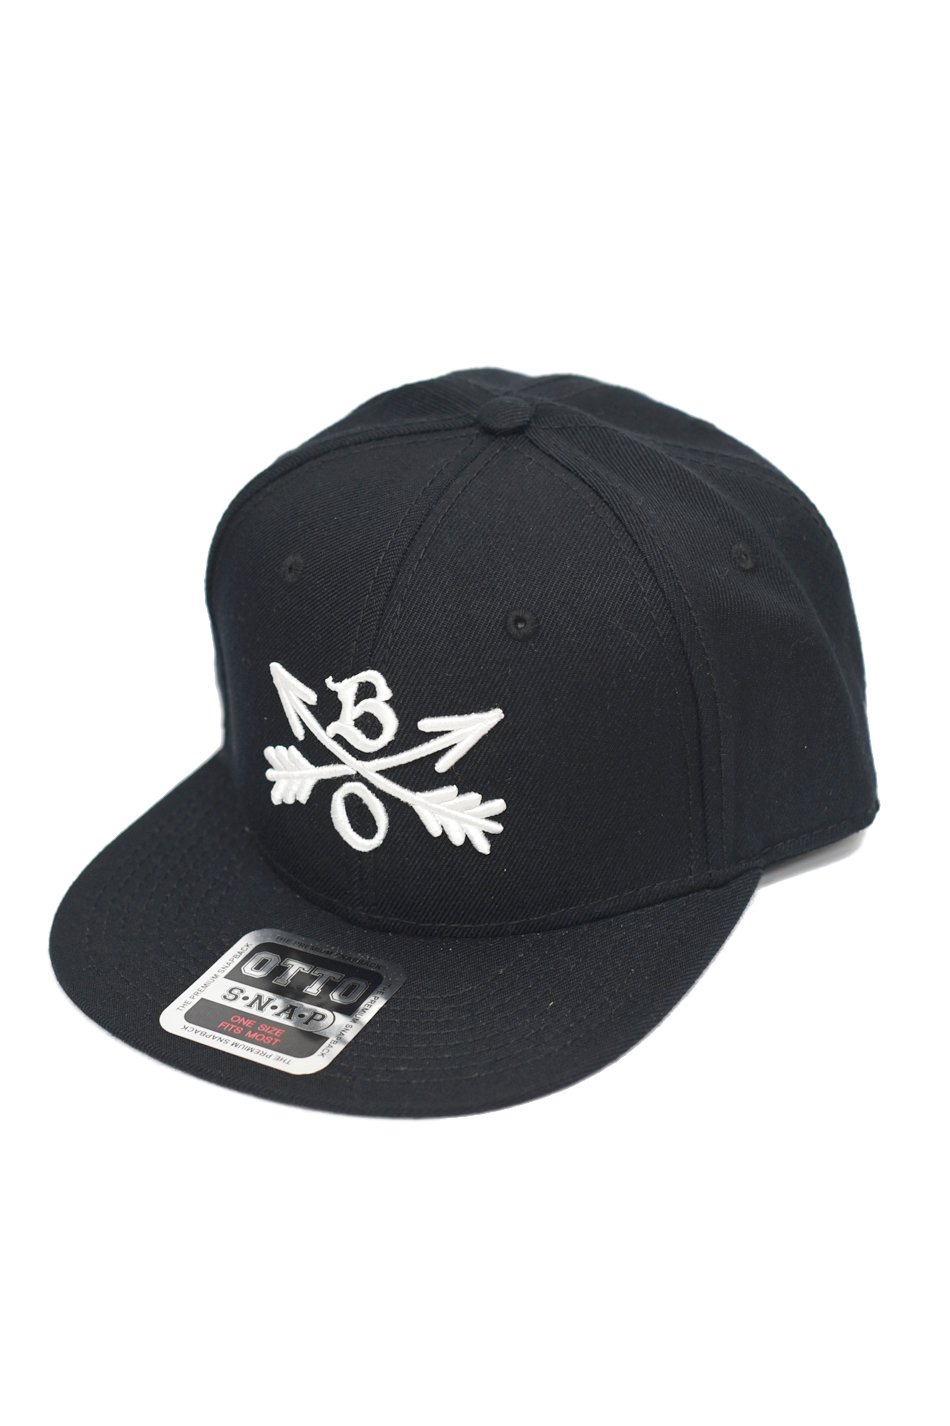 再入荷!Burnout(バーンアウト)Crossed Arrows Cap / 3D Embroidery / ブラック